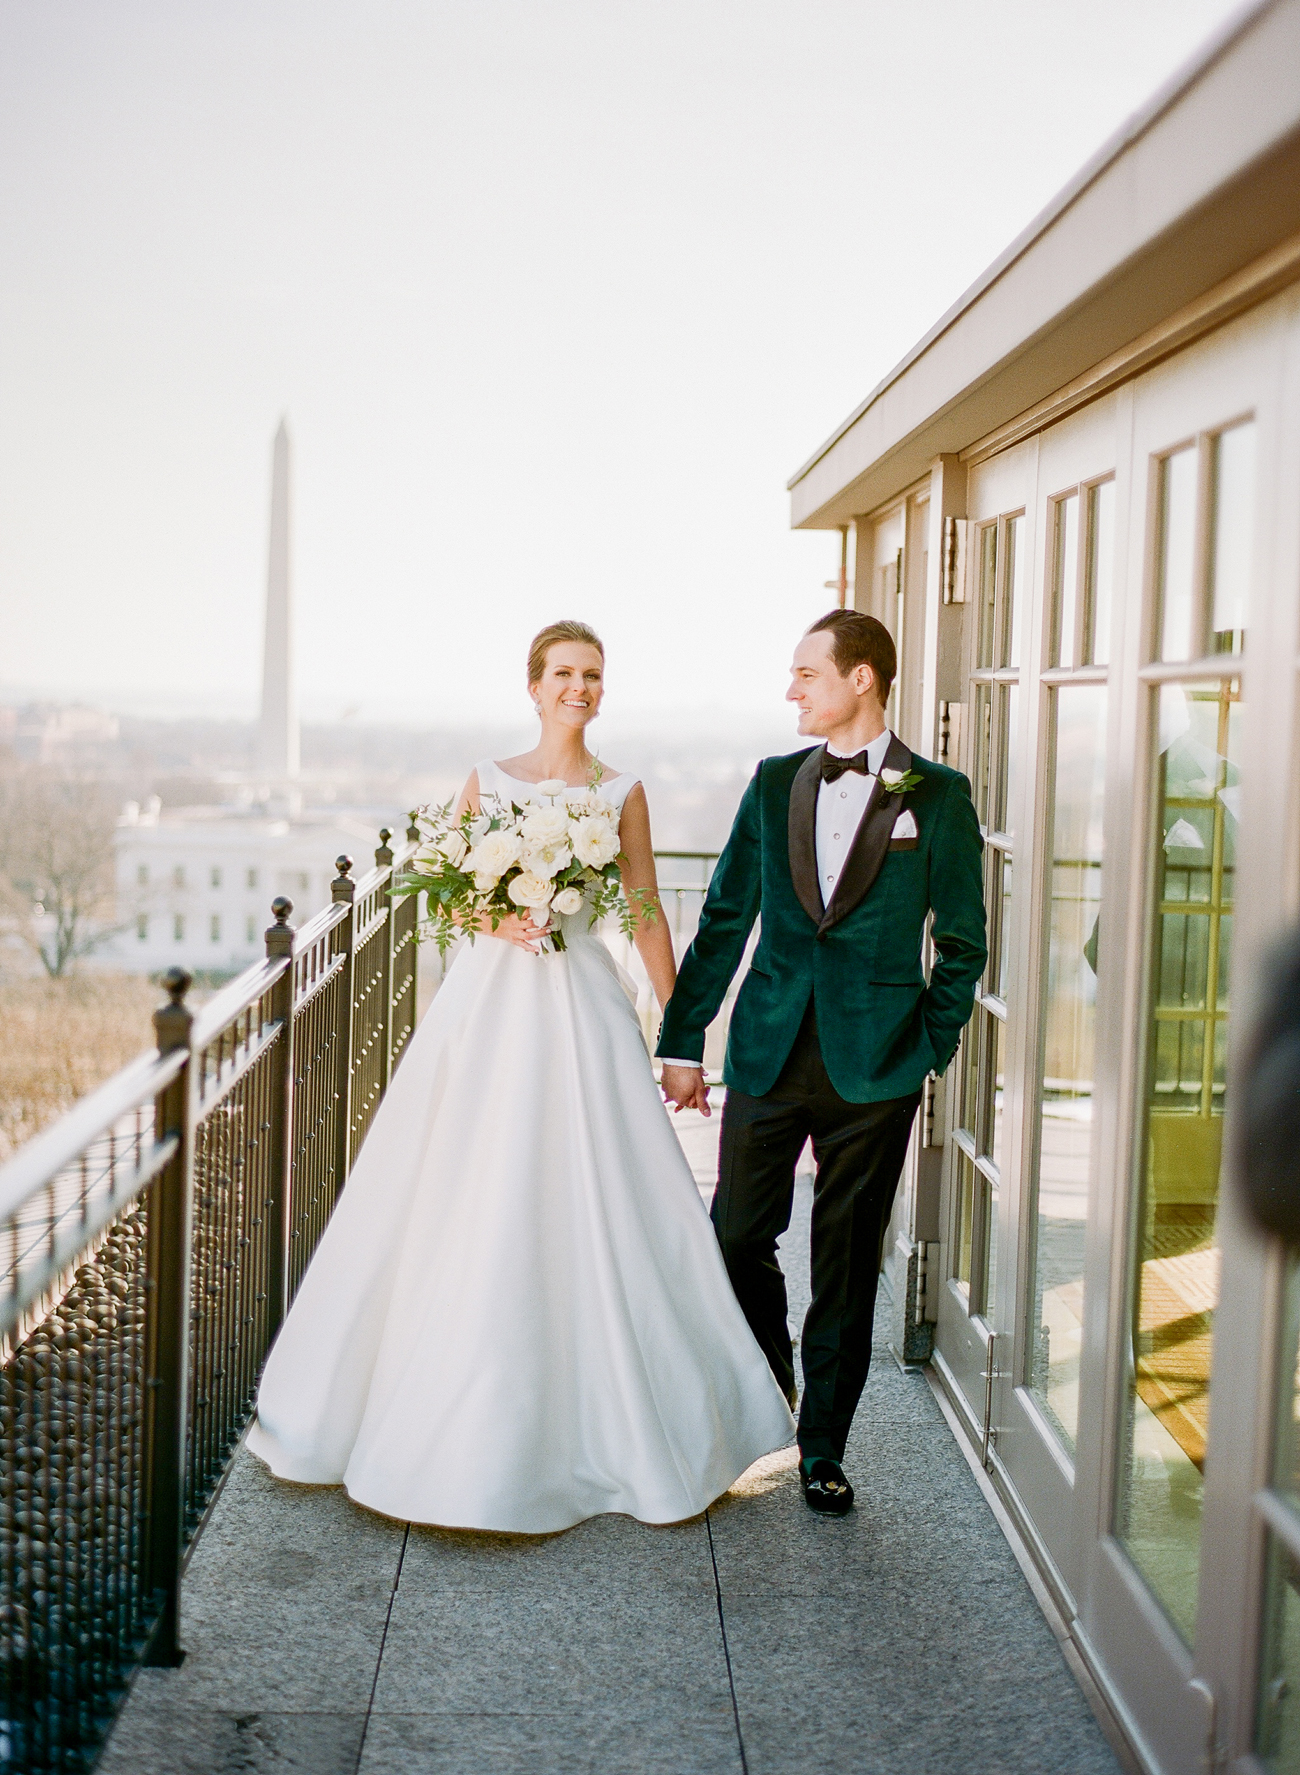 bride and groom outside holding hands